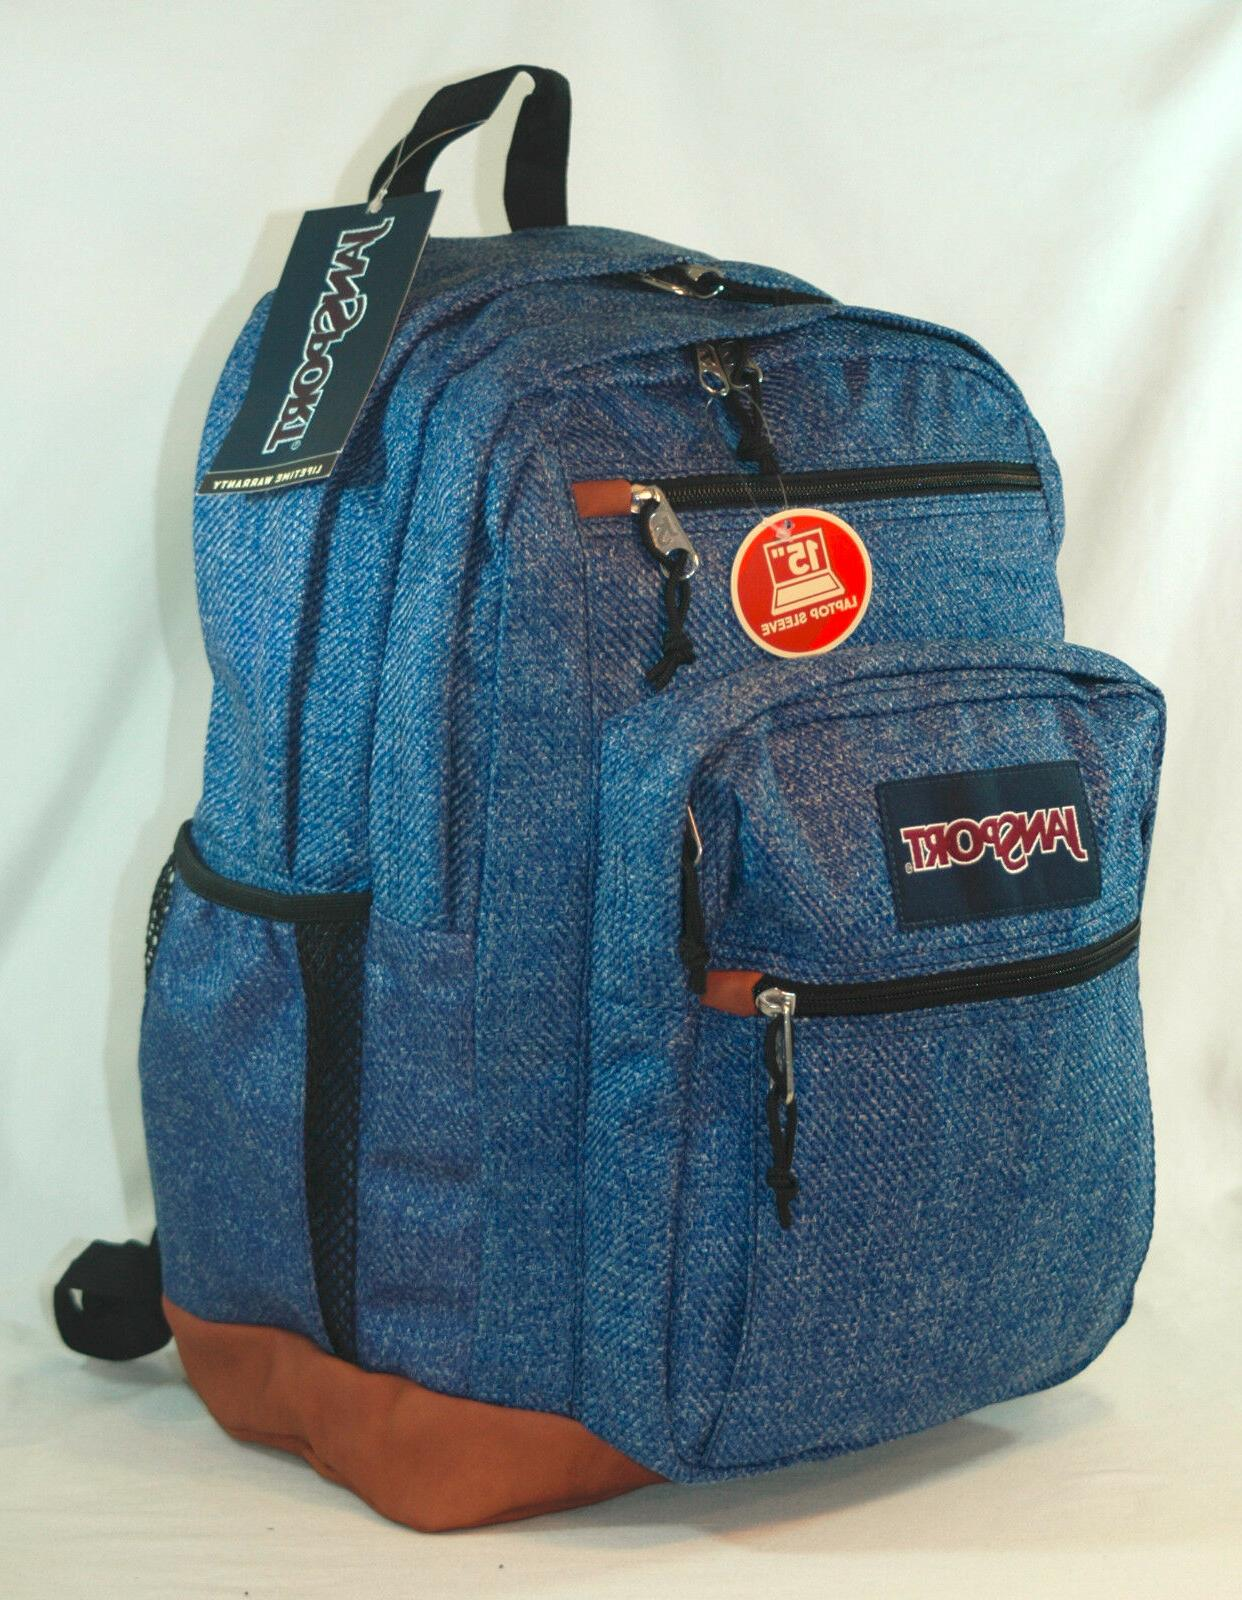 new big cool student laptop backpack blue